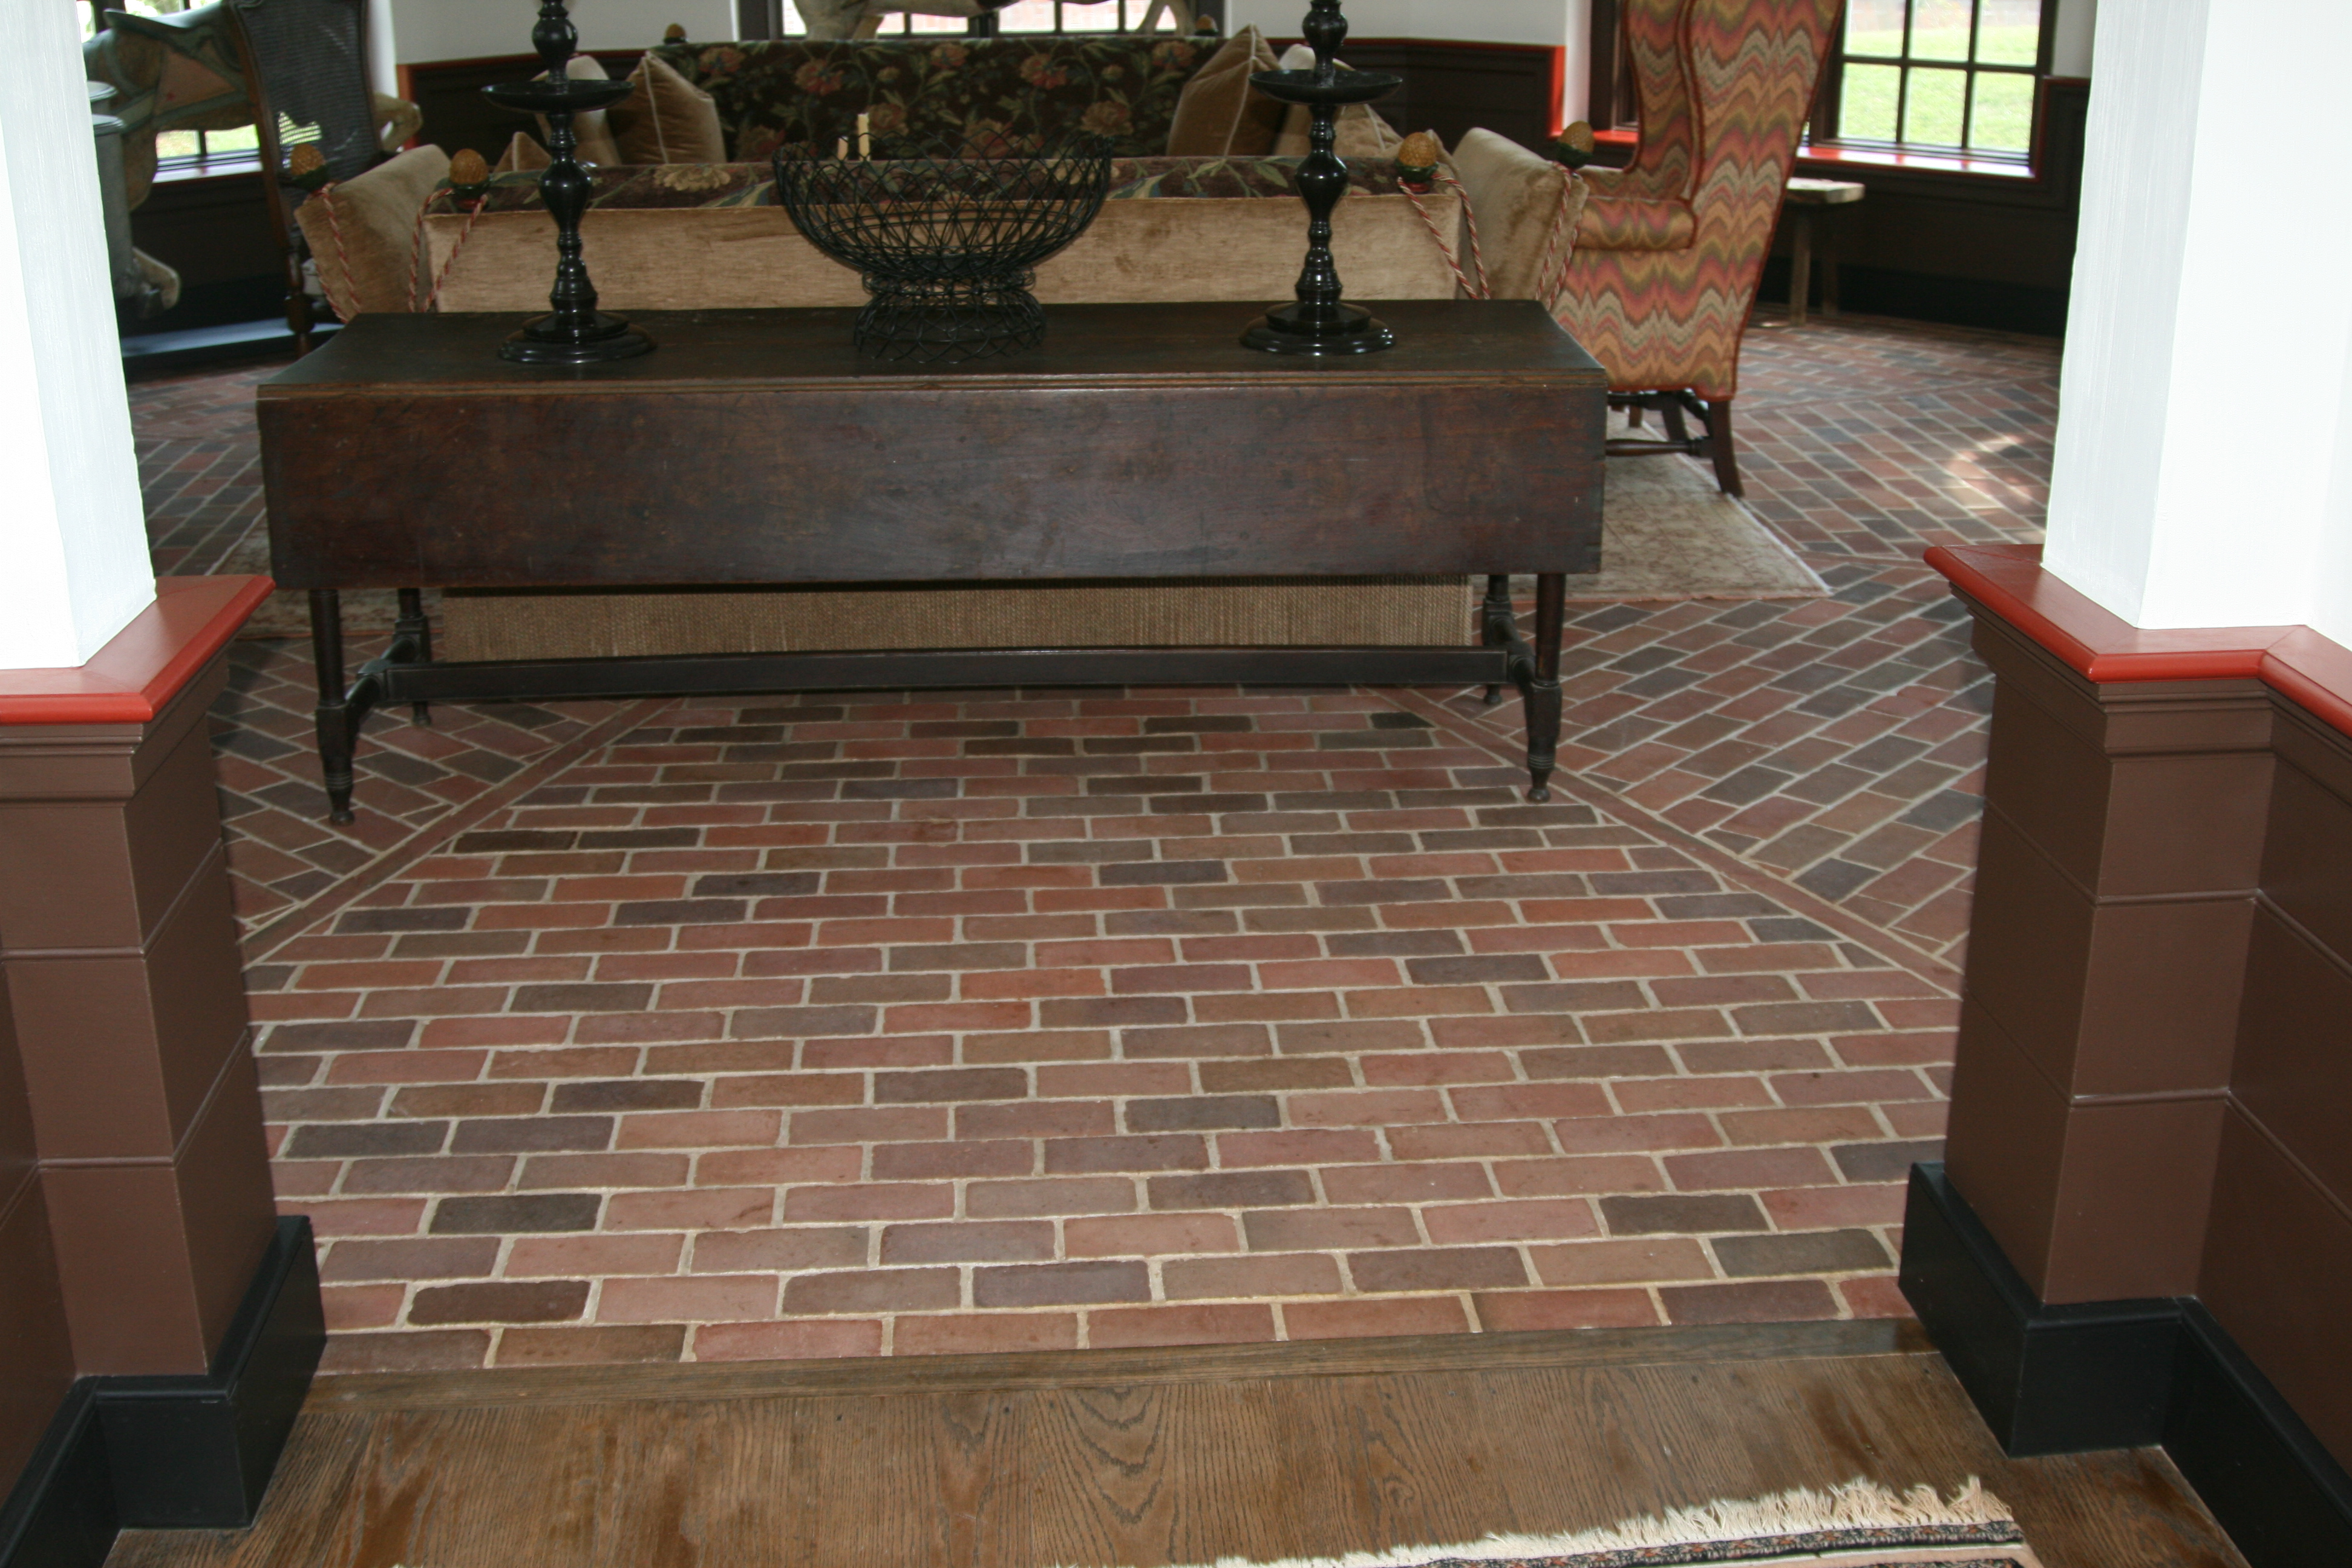 A Sitting Area With Red Brick Floor